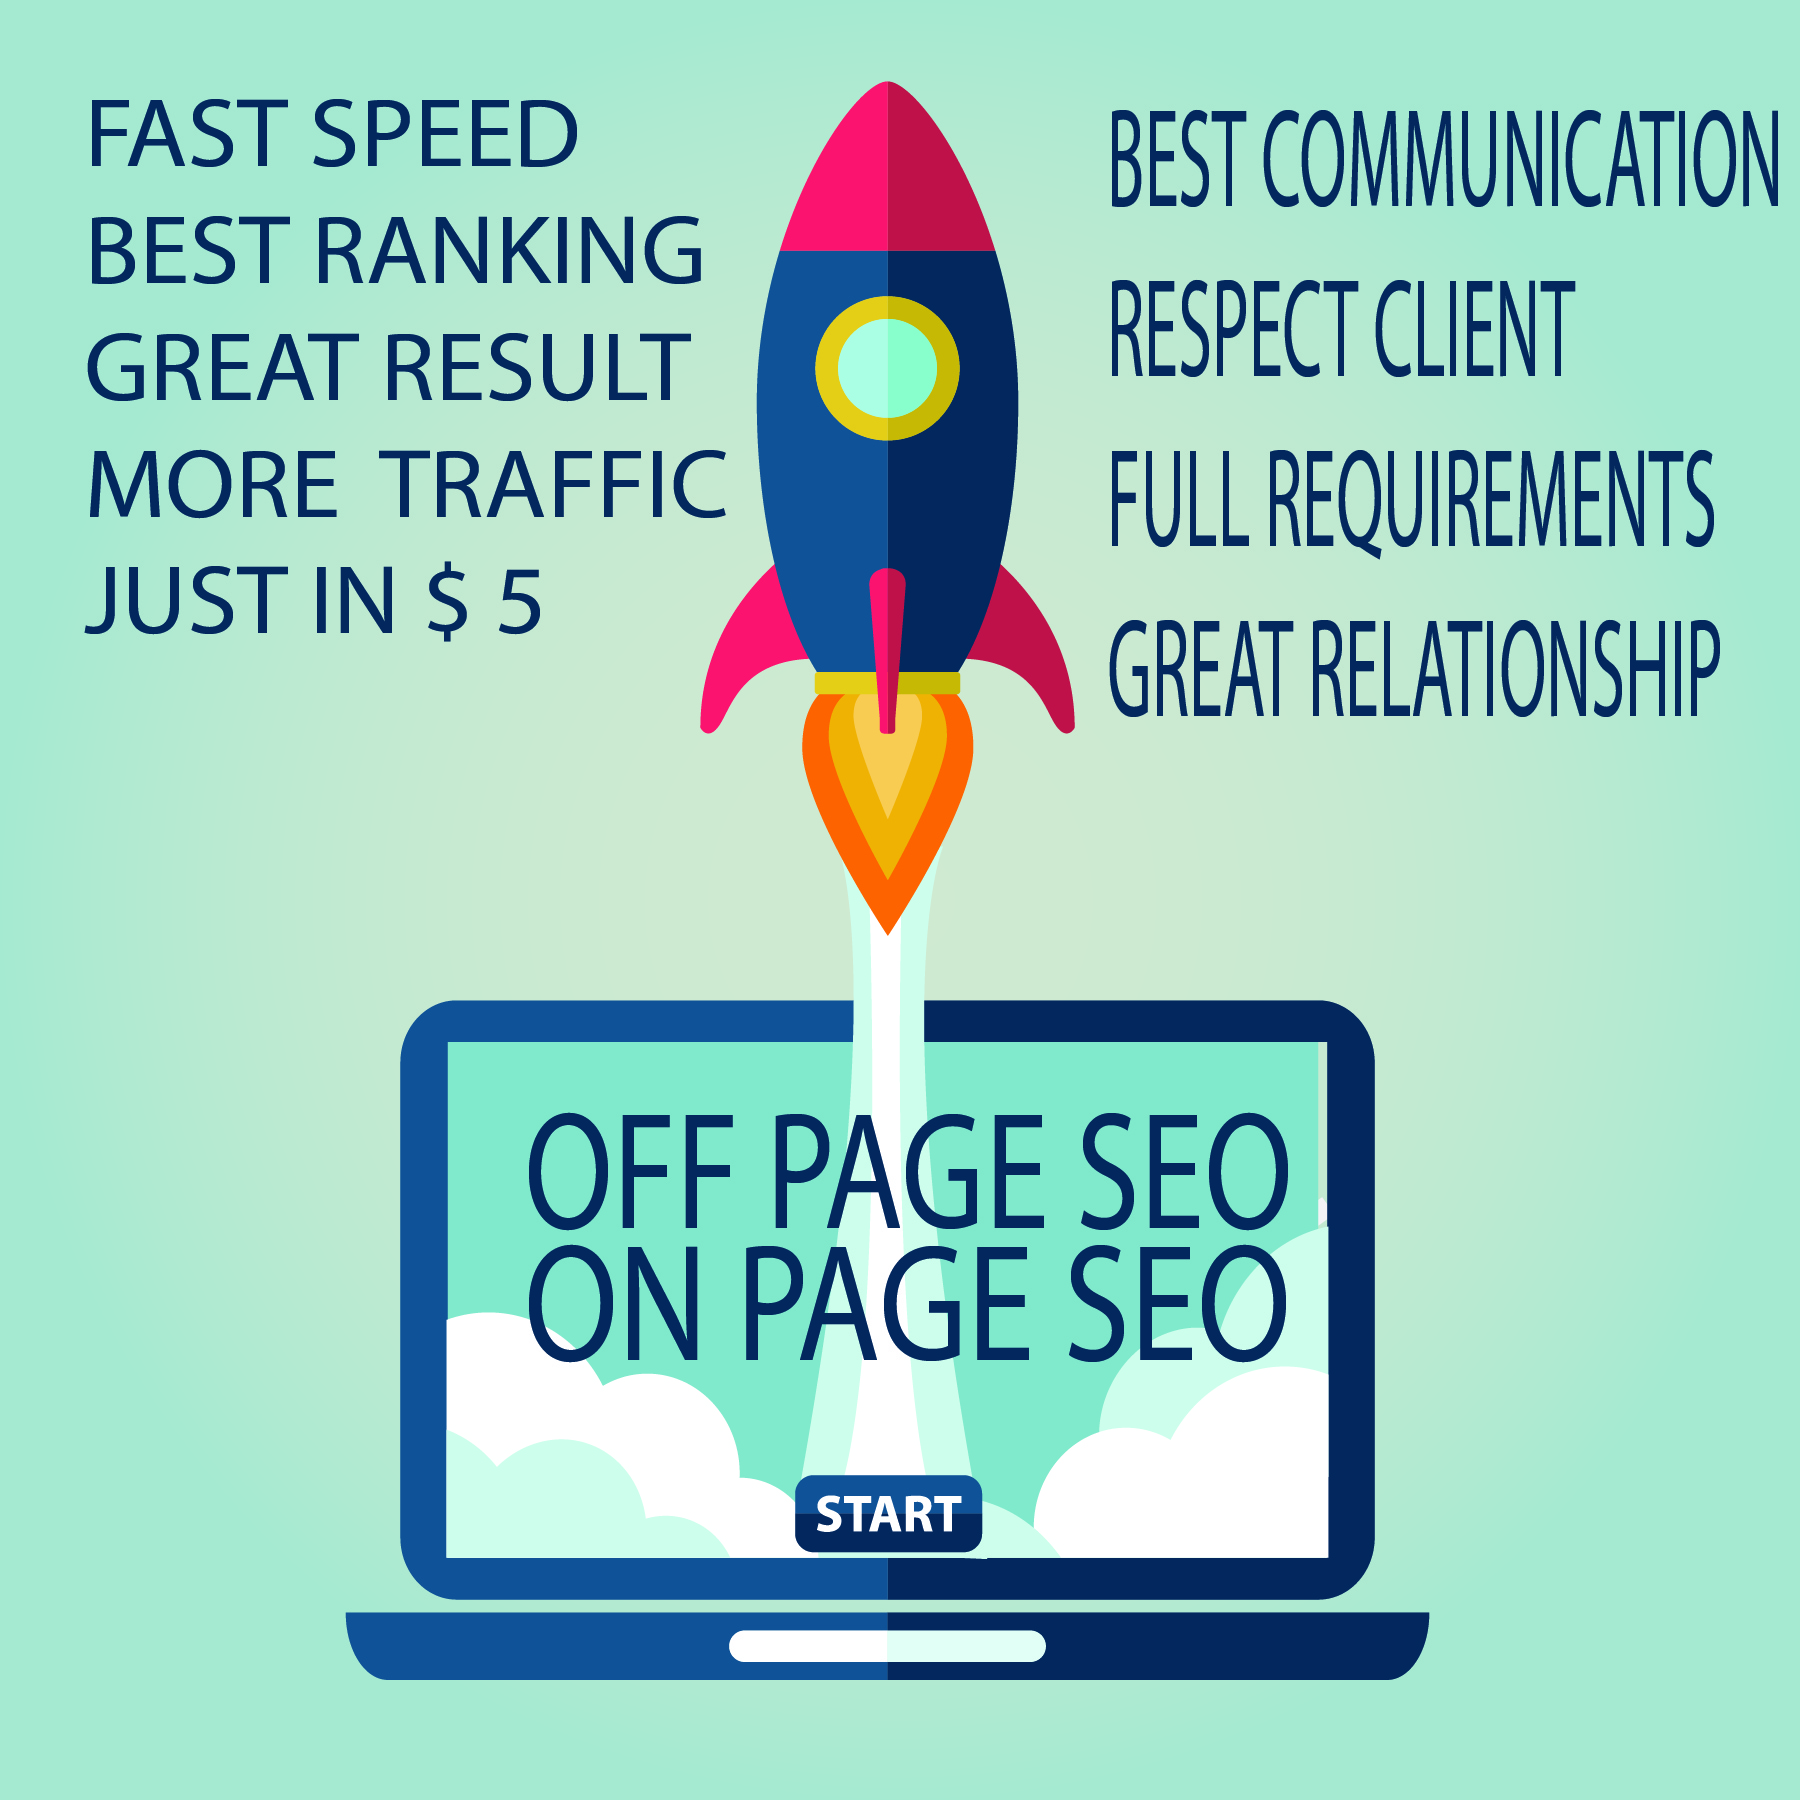 perform a complete and professional onpage and off page SEO